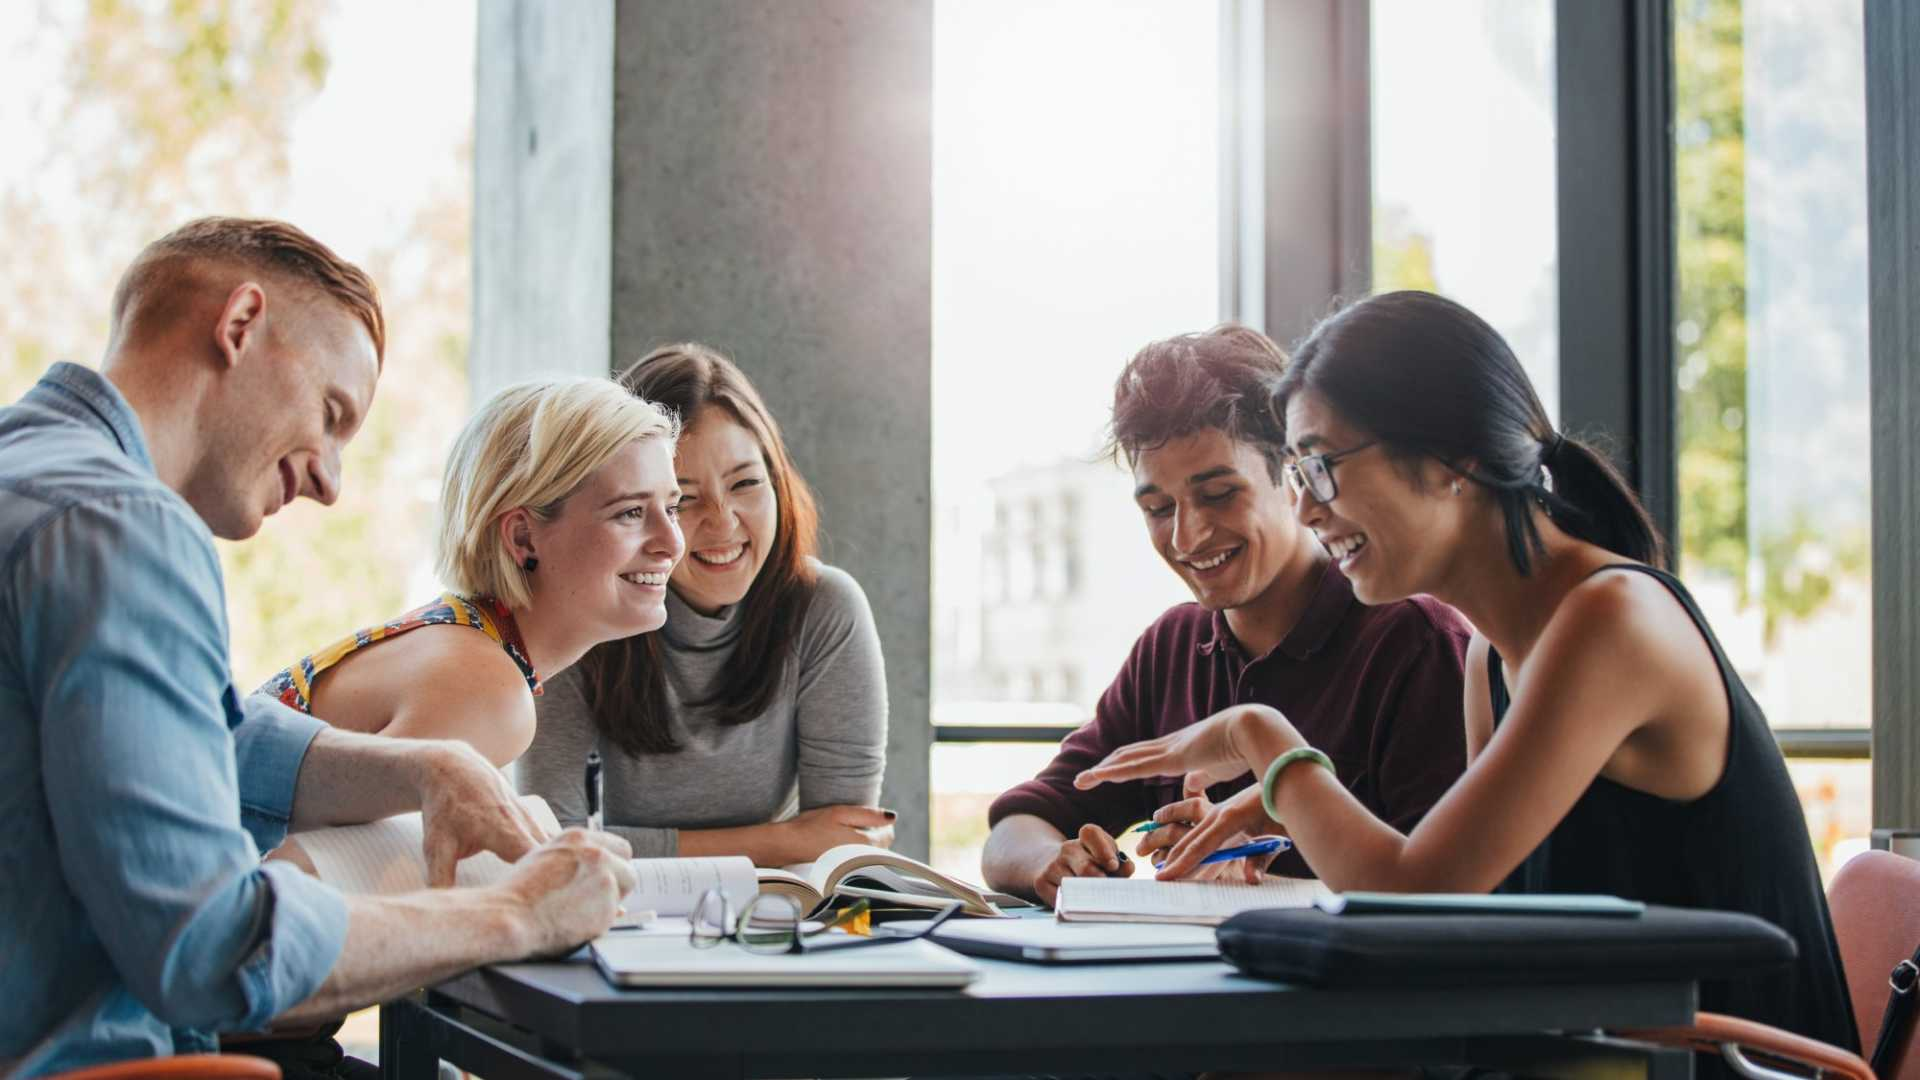 It Is Time to Rethink How To Get the Most From College